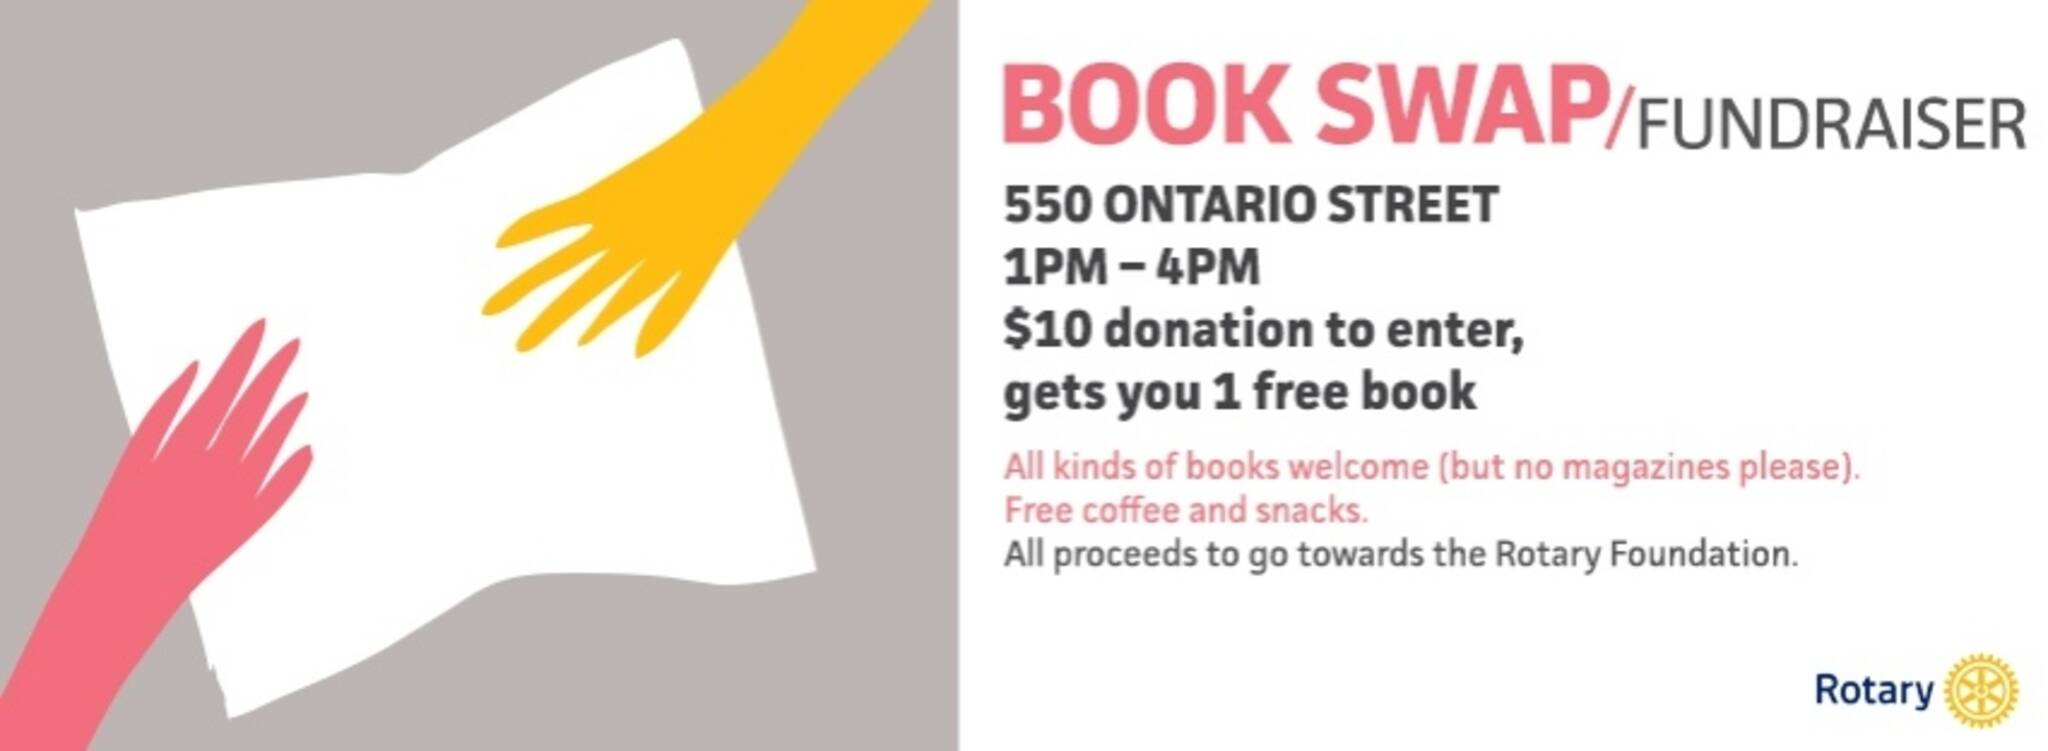 Rotary Club of Toronto Skyline Book Swap Fundraiser!